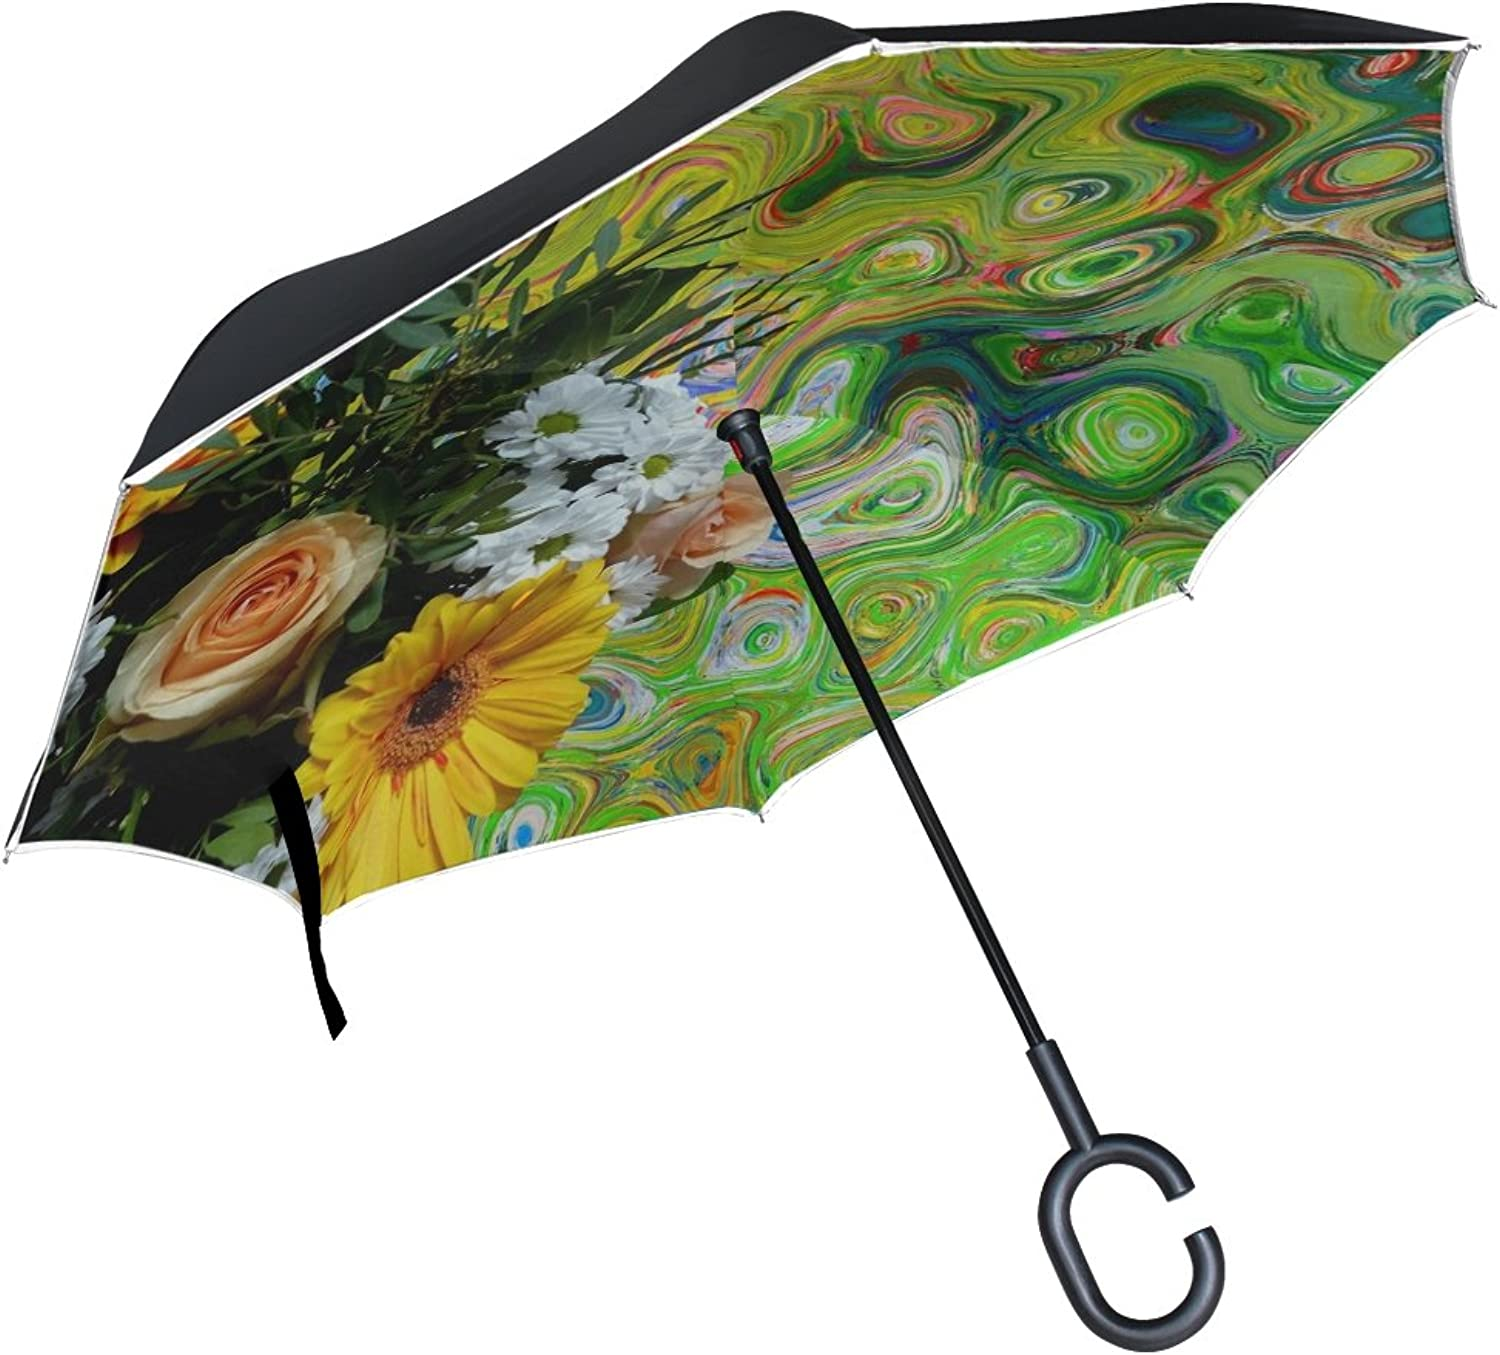 Double Layer Ingreened Bouquet of Flowers pinks Flowers Nature Bouquet Umbrellas Reverse Folding Umbrella Windproof Uv Predection Big Straight Umbrella for Car Rain Outdoor with CShaped Handle